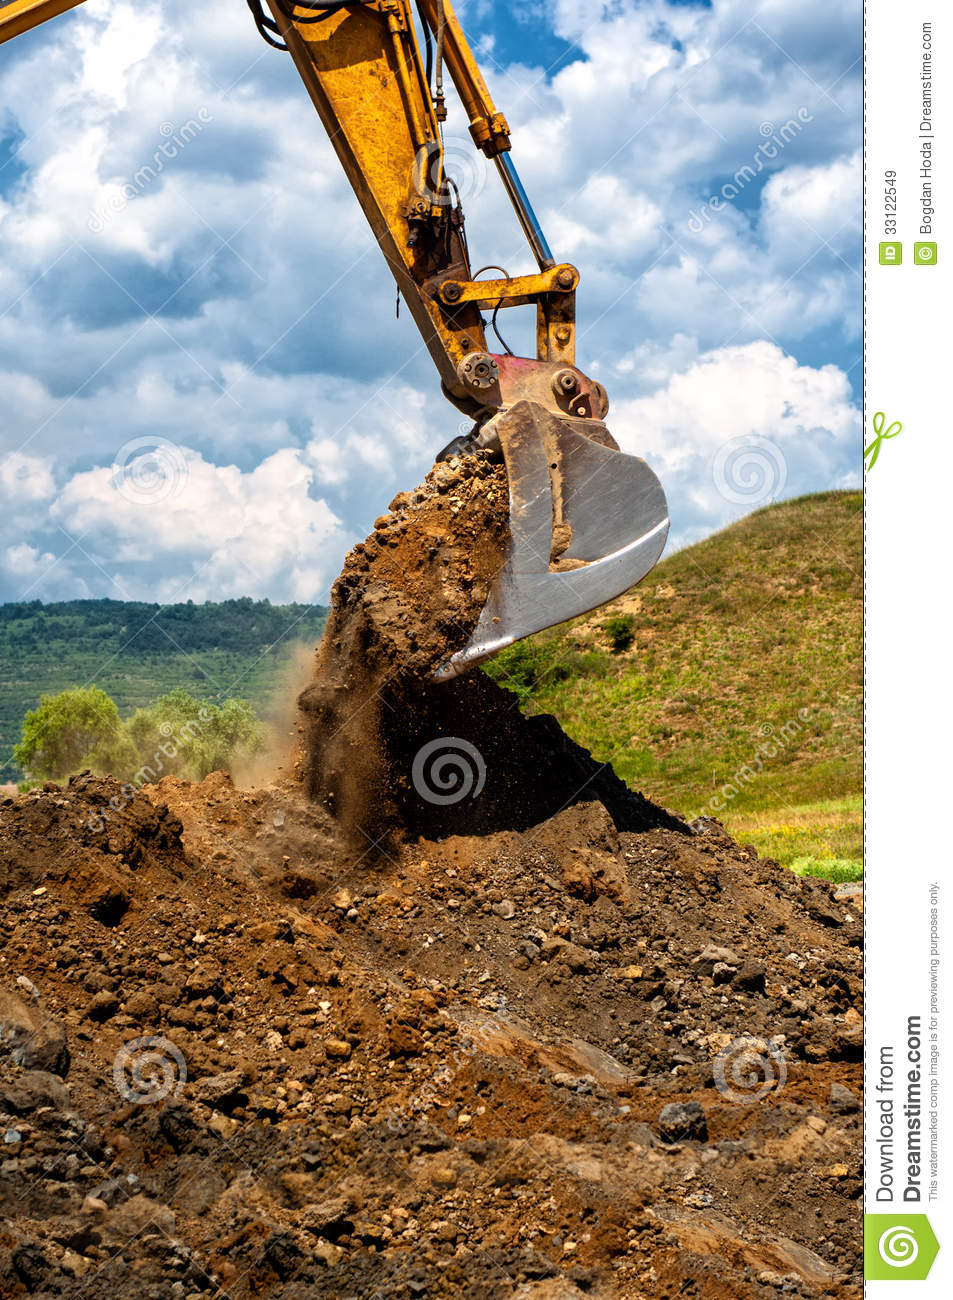 Construction Site Soil : Heavy duty vehicule scoop working with soil royalty free